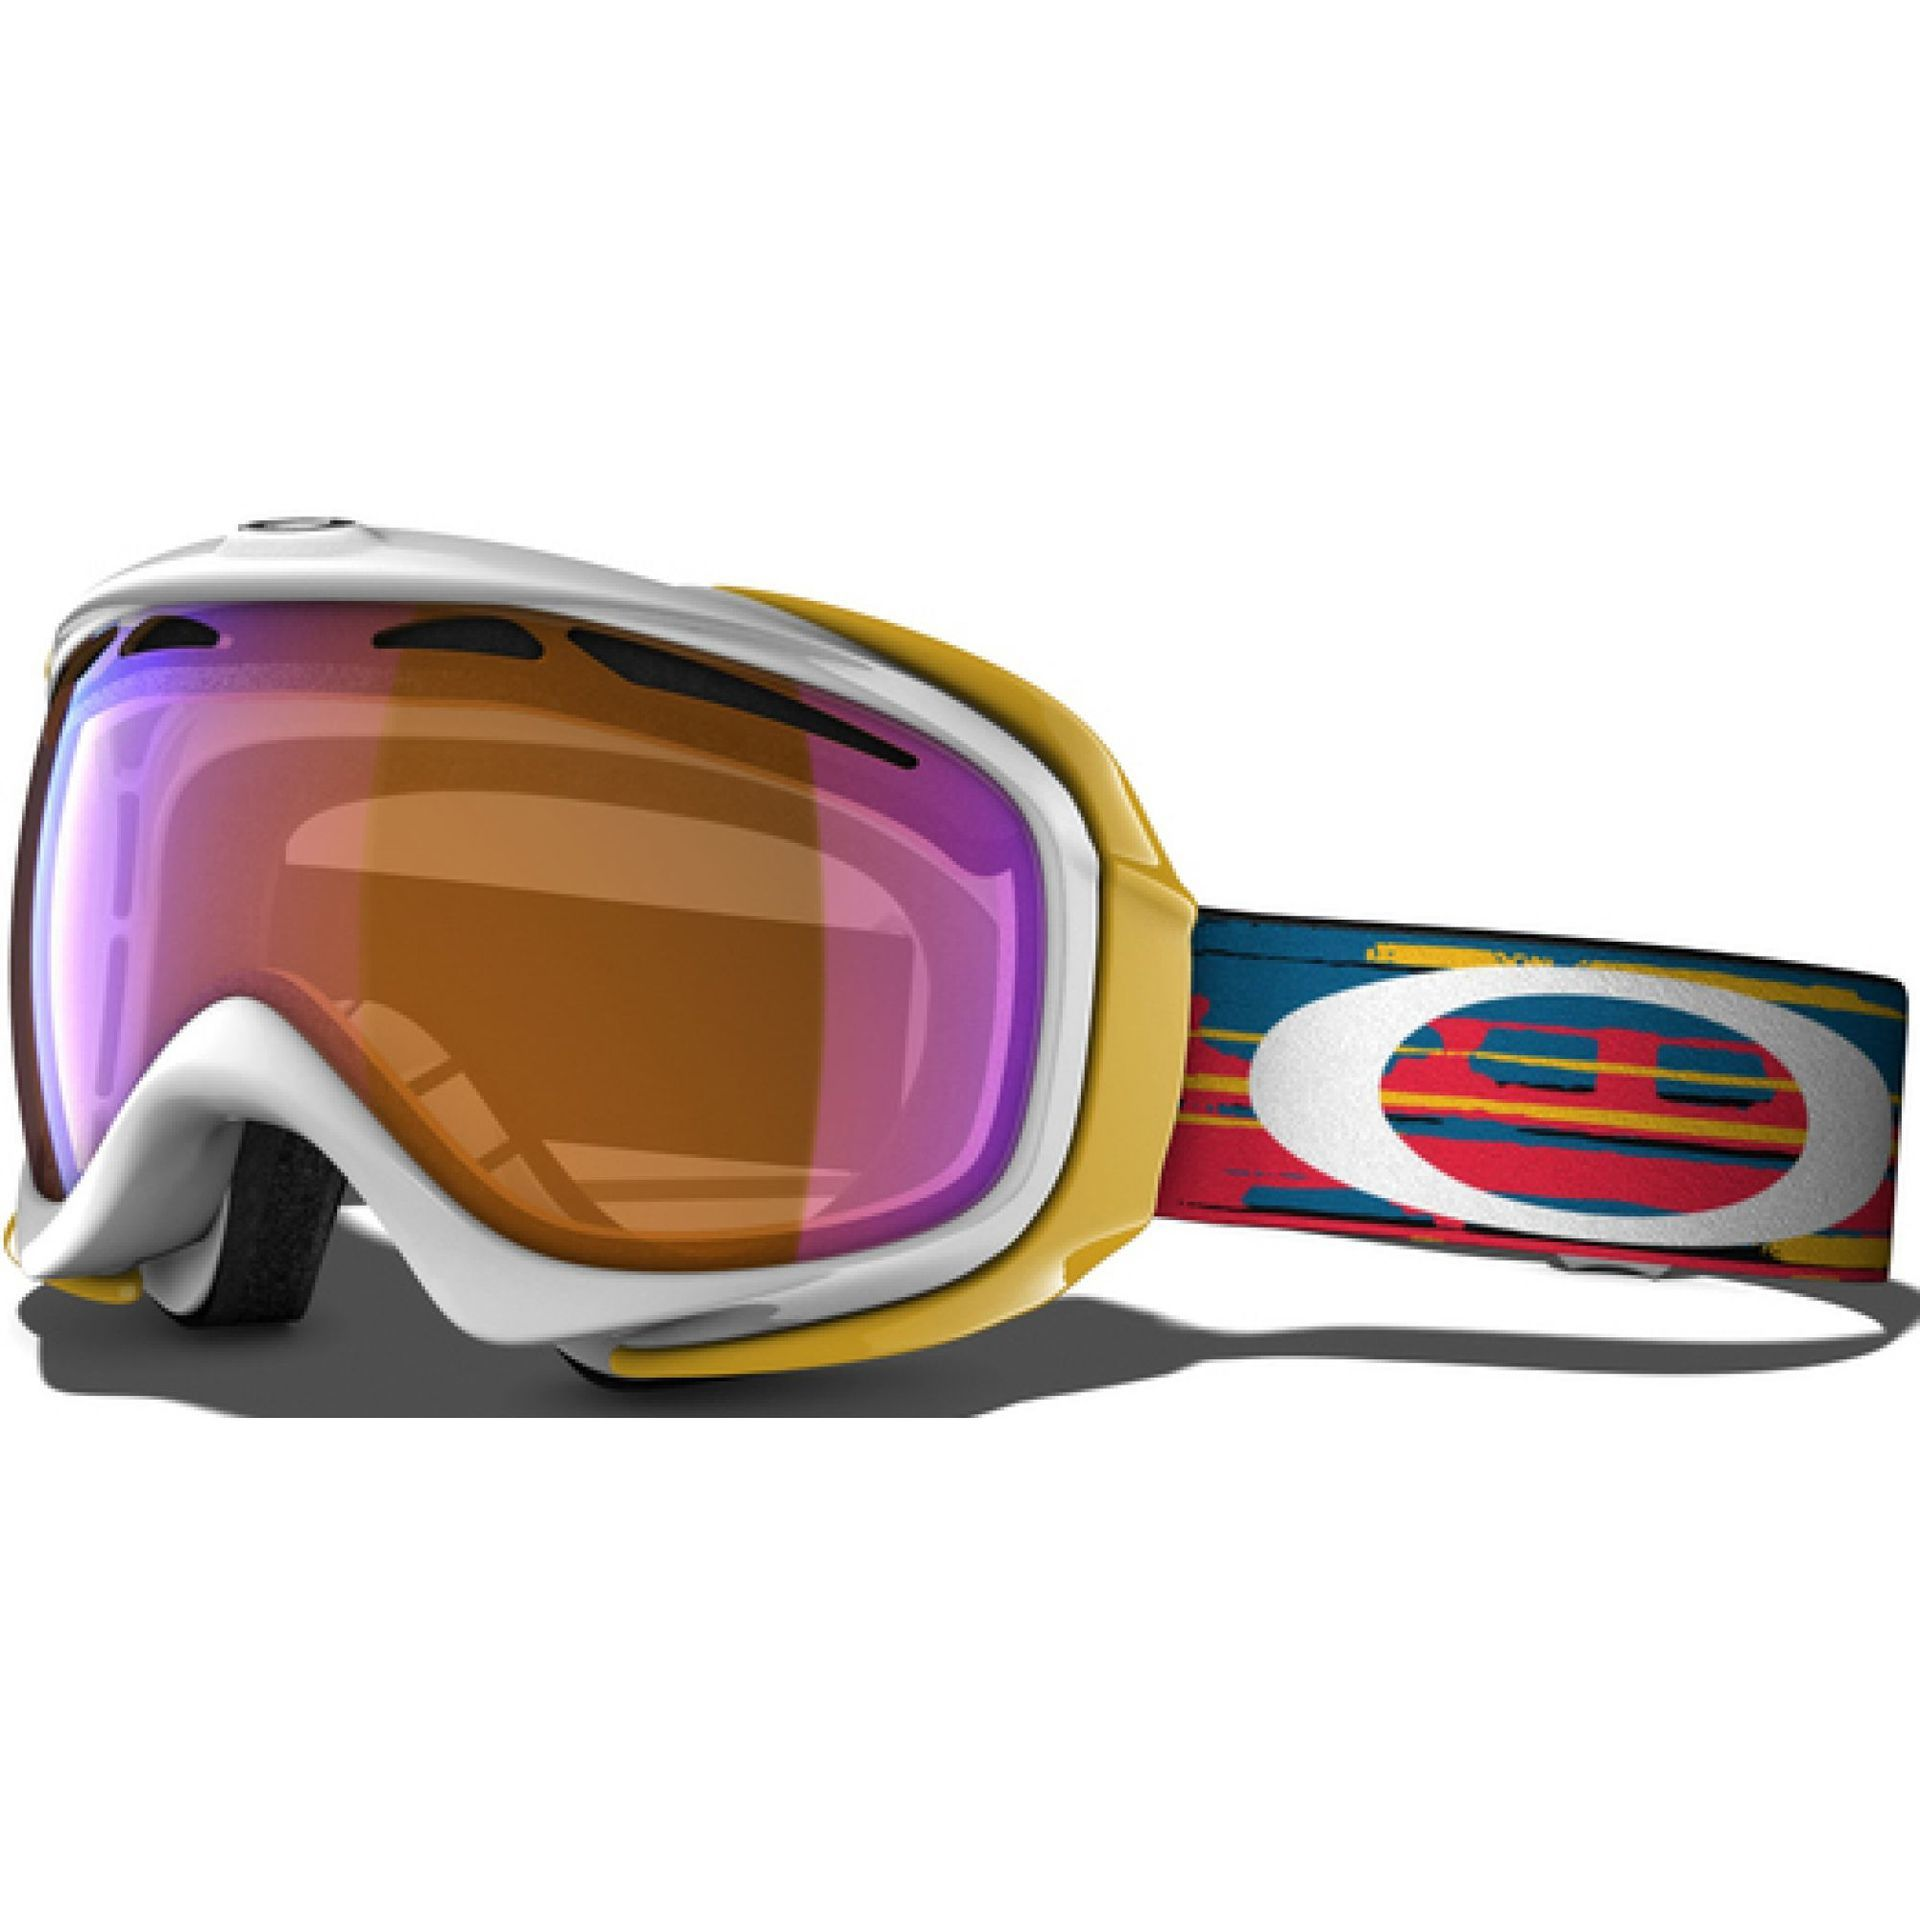 GOGLE OAKLEY ELEVATE HI INTESITIVE PERSIMMON